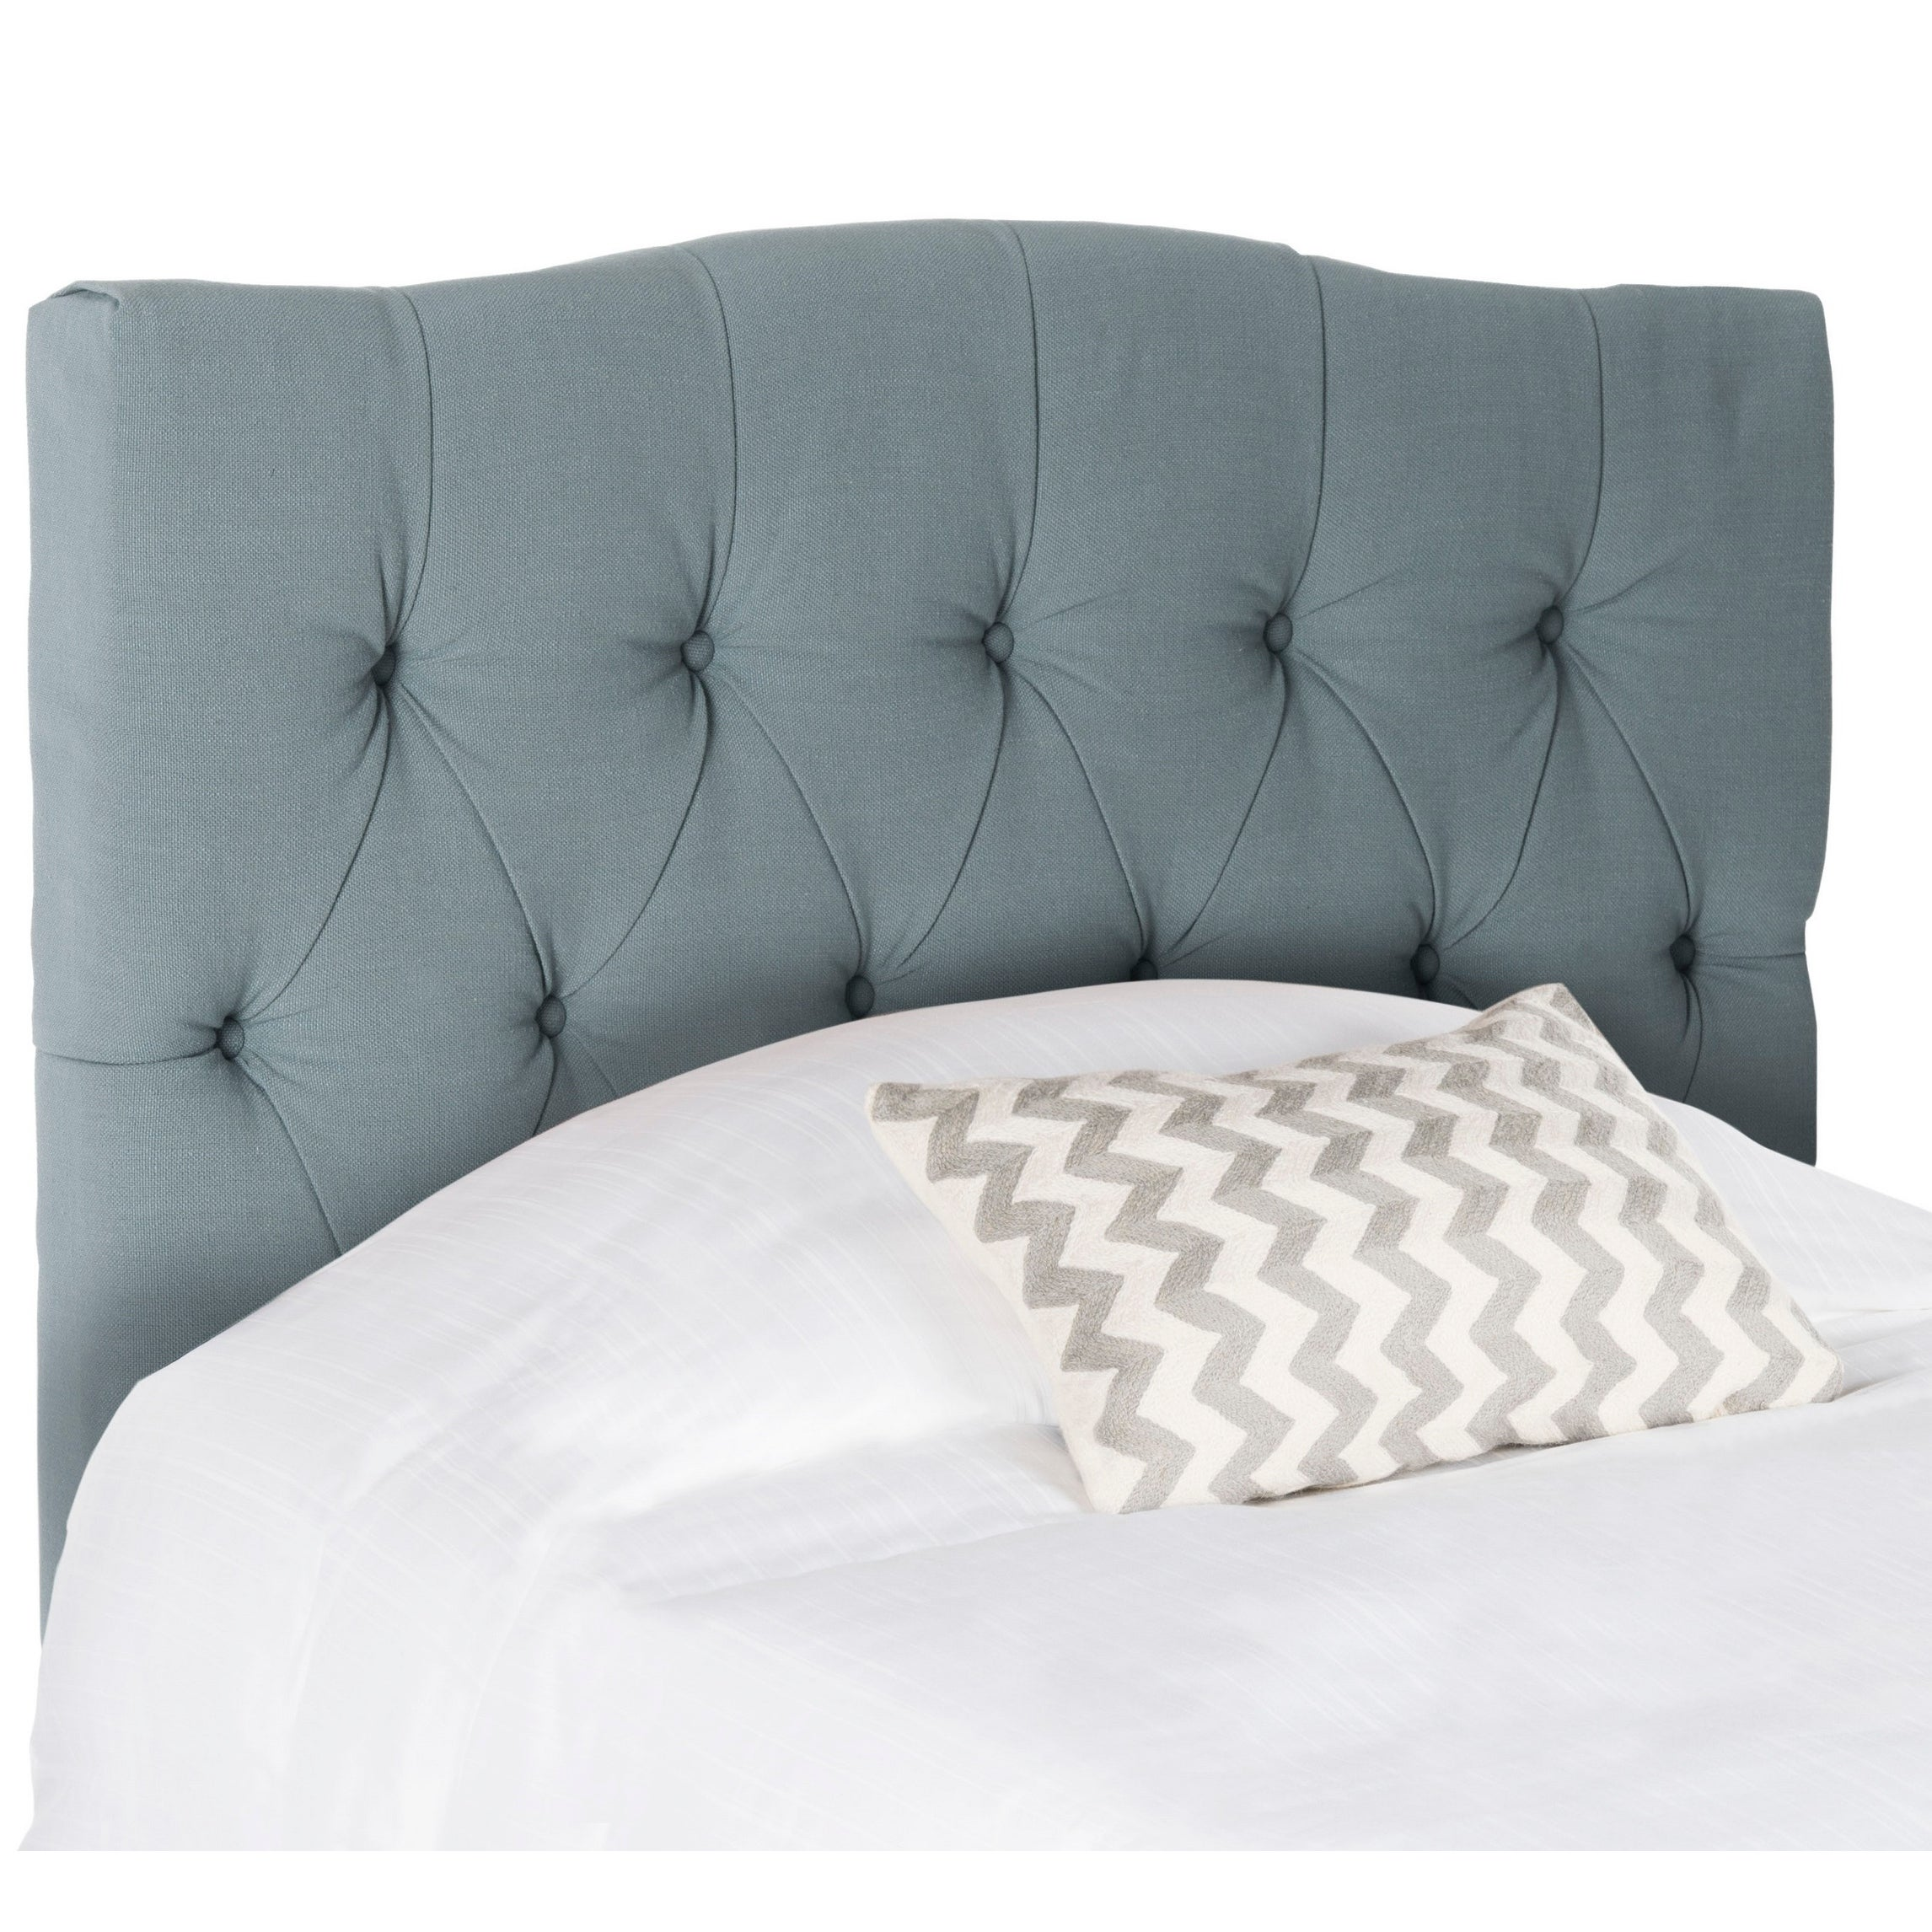 6106830b210c1 Details about Safavieh Axel Sky Blue Upholstered Tufted Headboard (Twin)